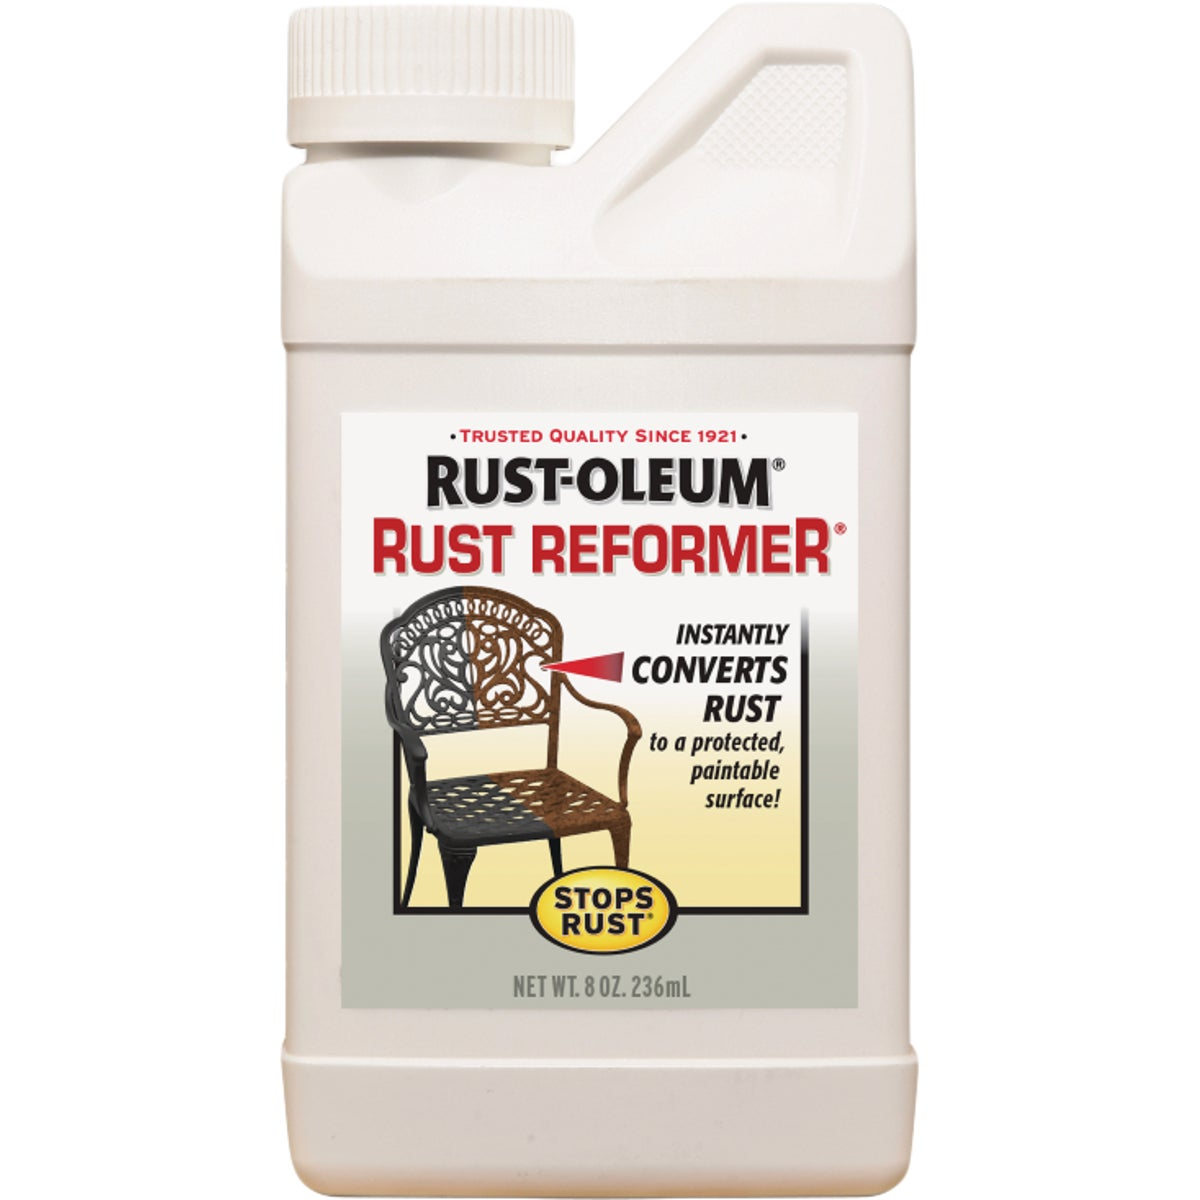 8OZ RUST REFORMER - 7830-730 by Rustoleum